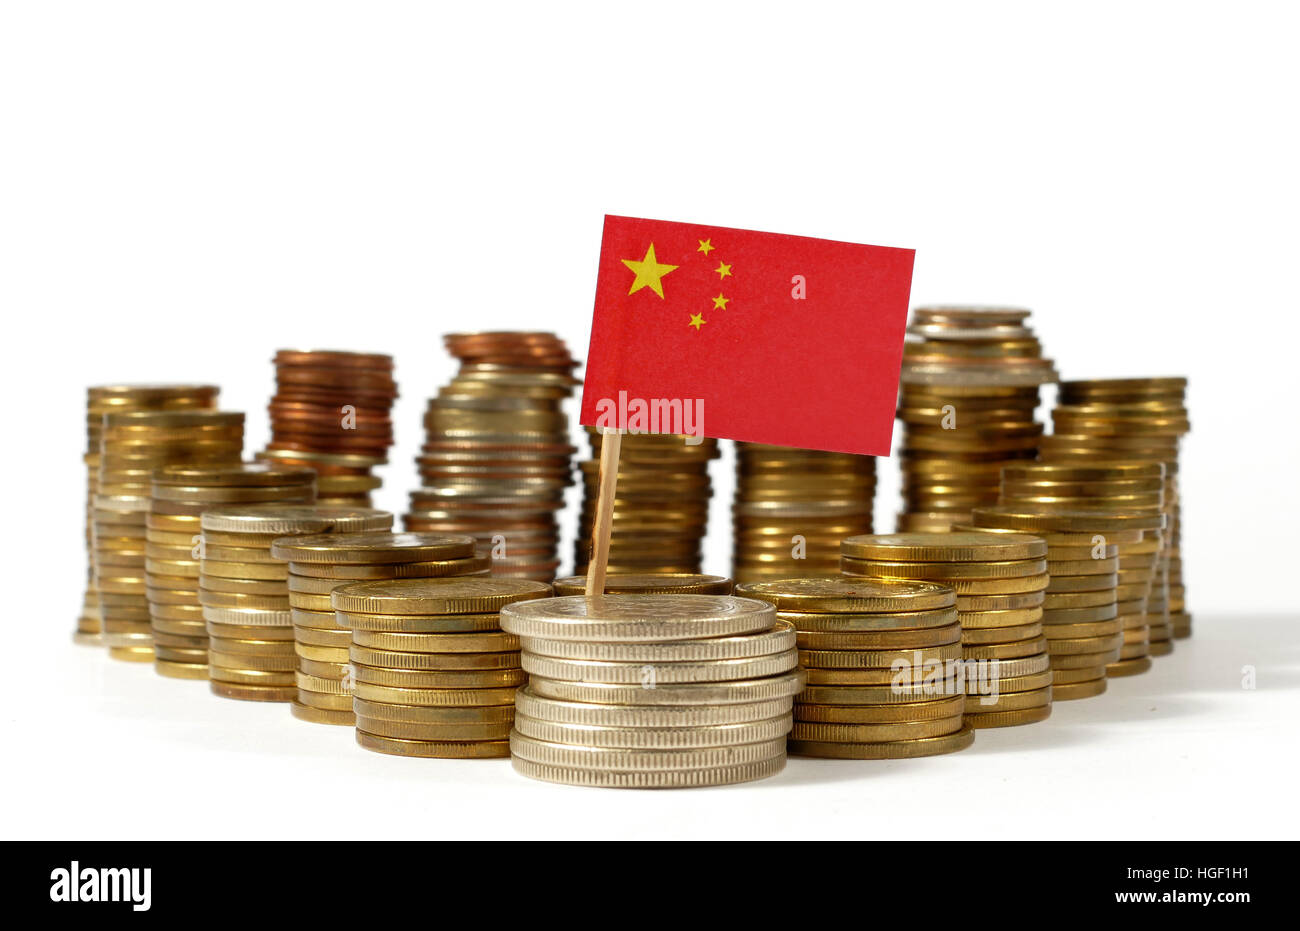 People's Republic of China flag waving with stack of money coins - Stock Image